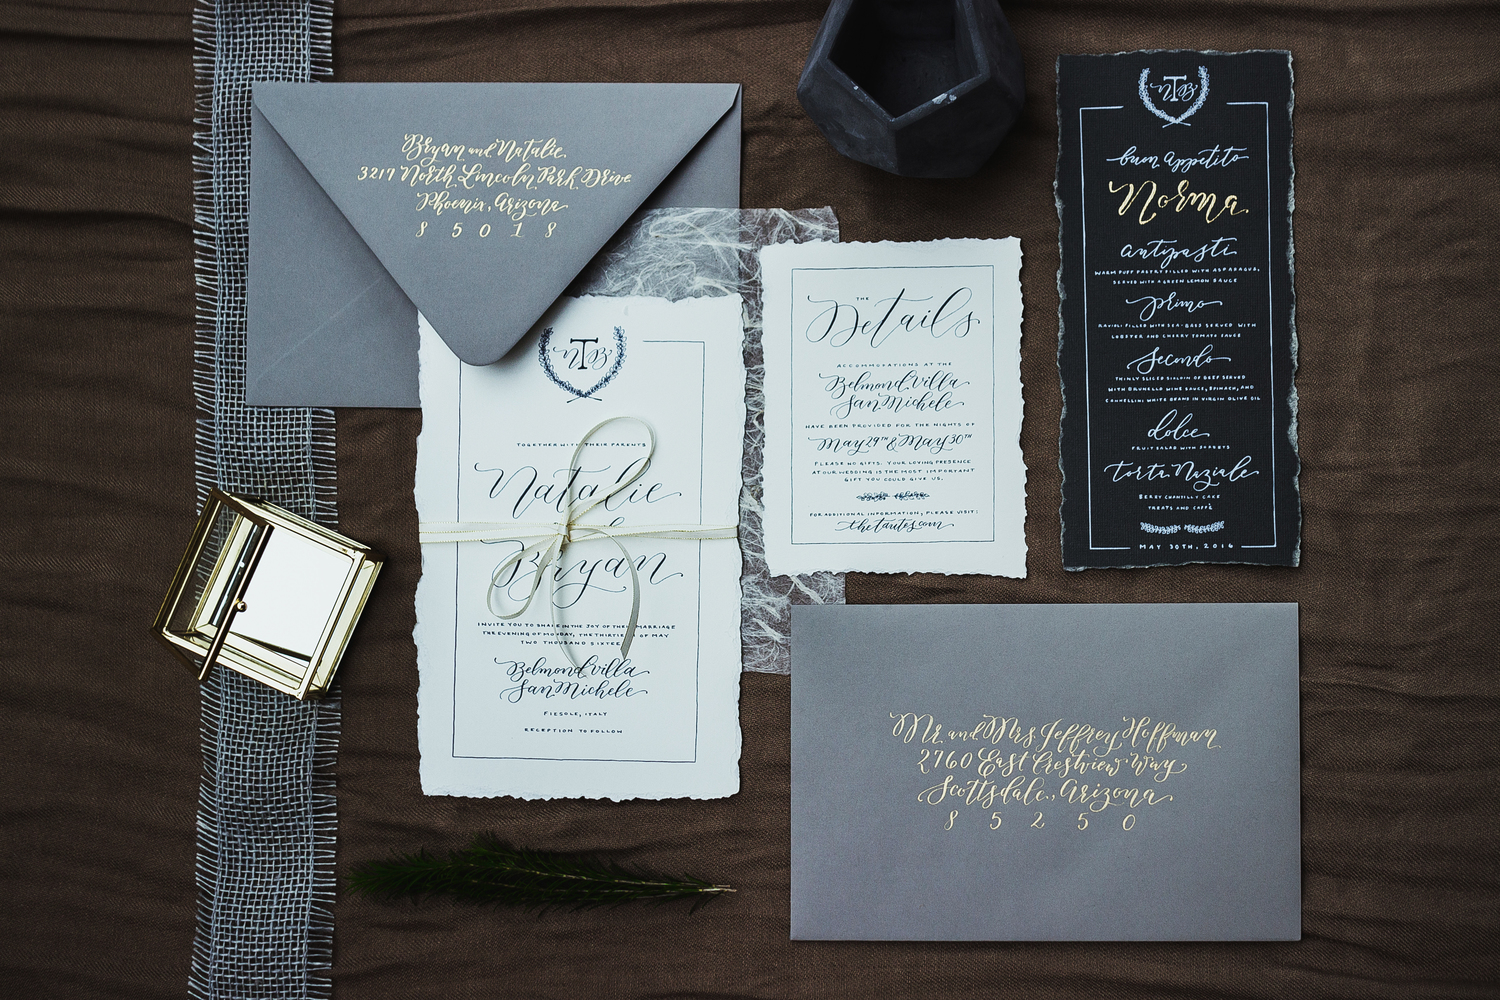 Pricing — Brush & Nib Studio | Hand-Painting + Hand-Lettered ...